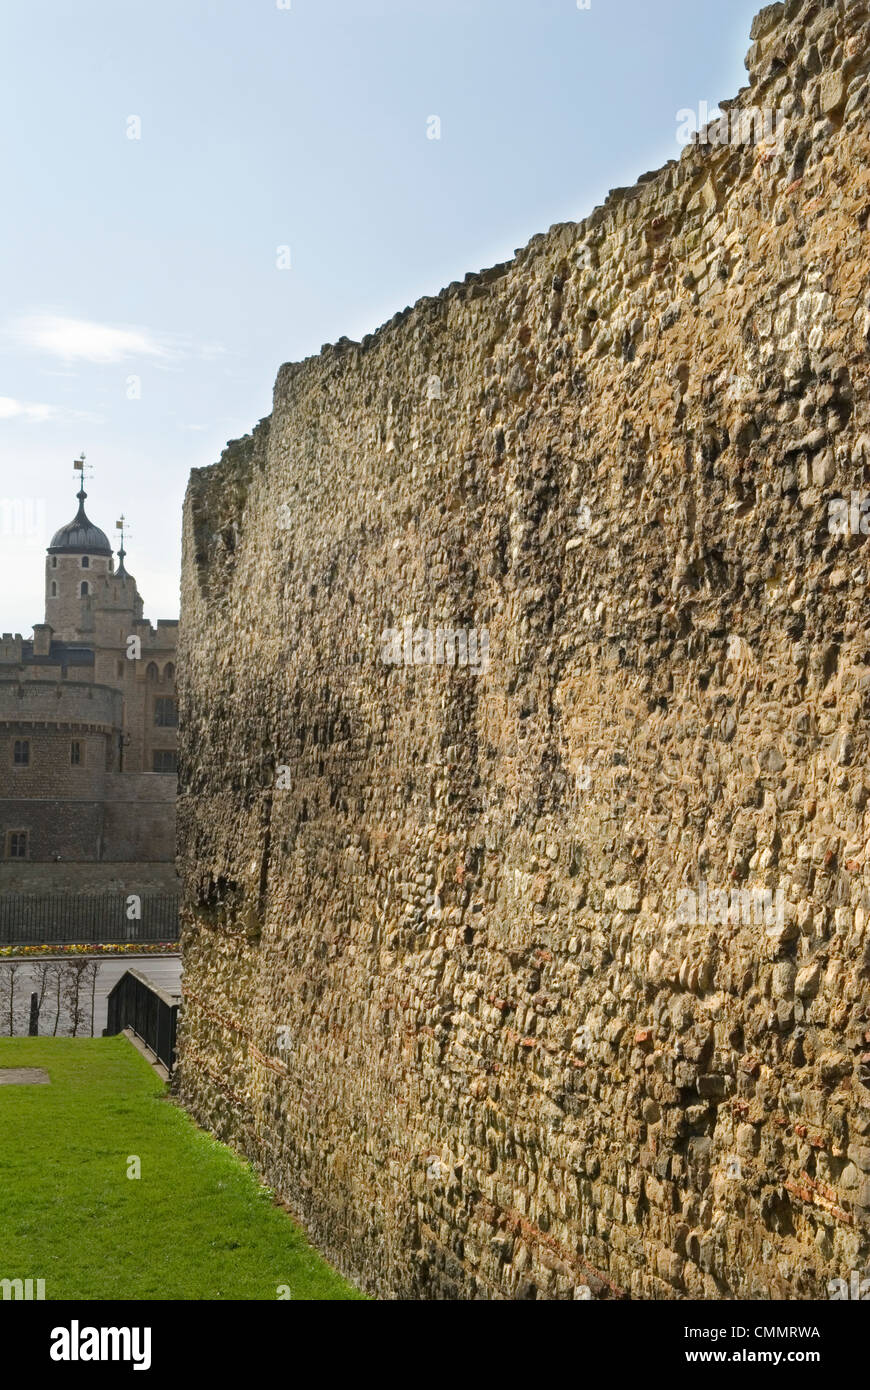 London Wall. At Tower Hill, Tower of London in background. London Uk - Stock Image